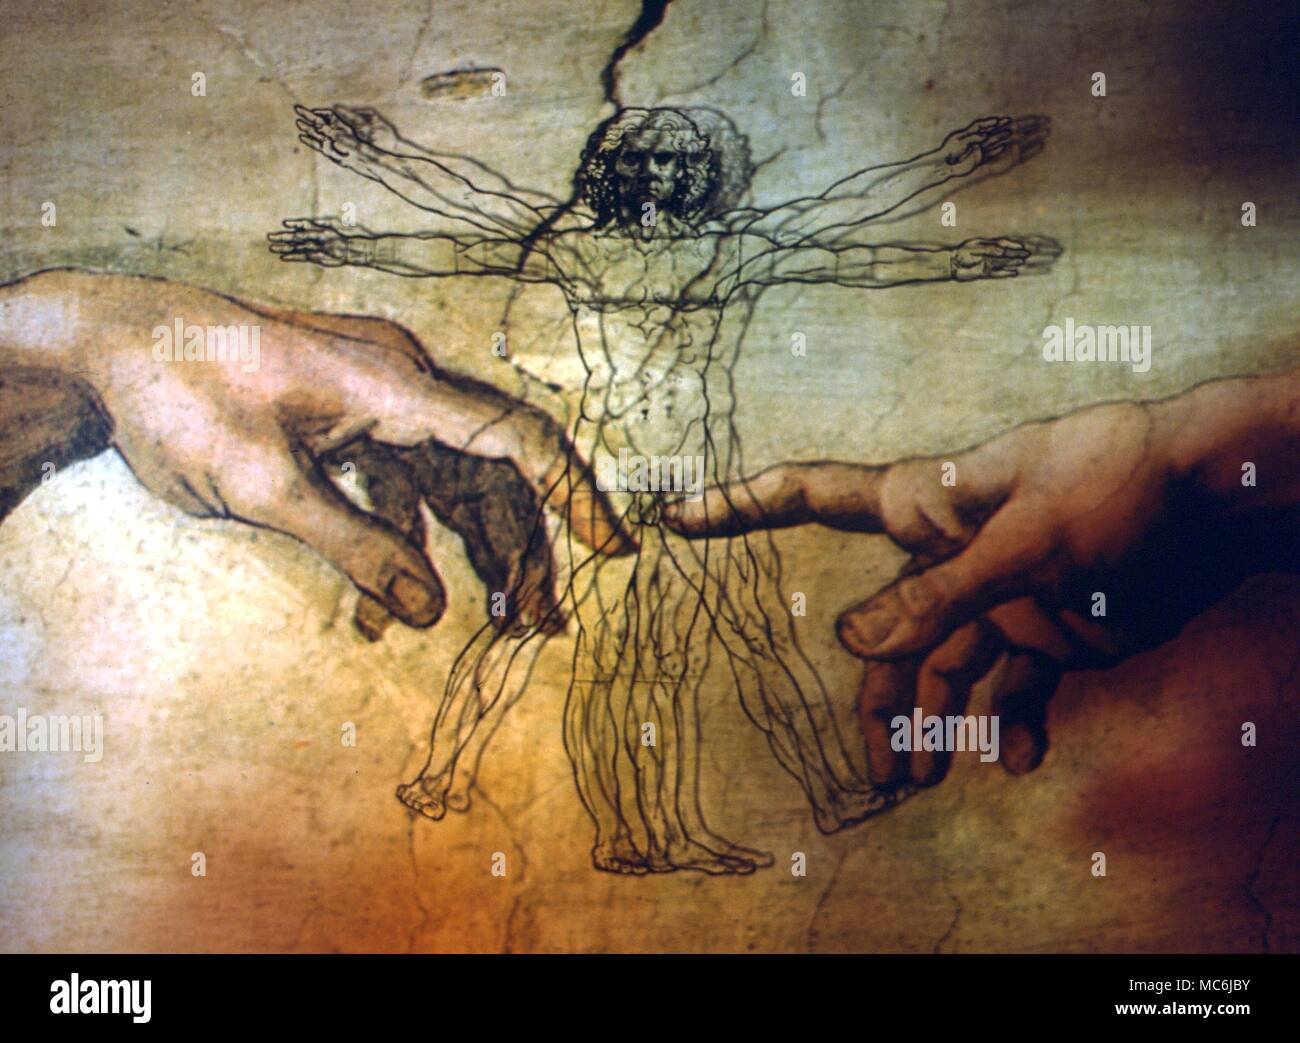 Art fantasy based on the combination of the famous geometric man of leonardo da vinci and the creative hand of god by michelangelo